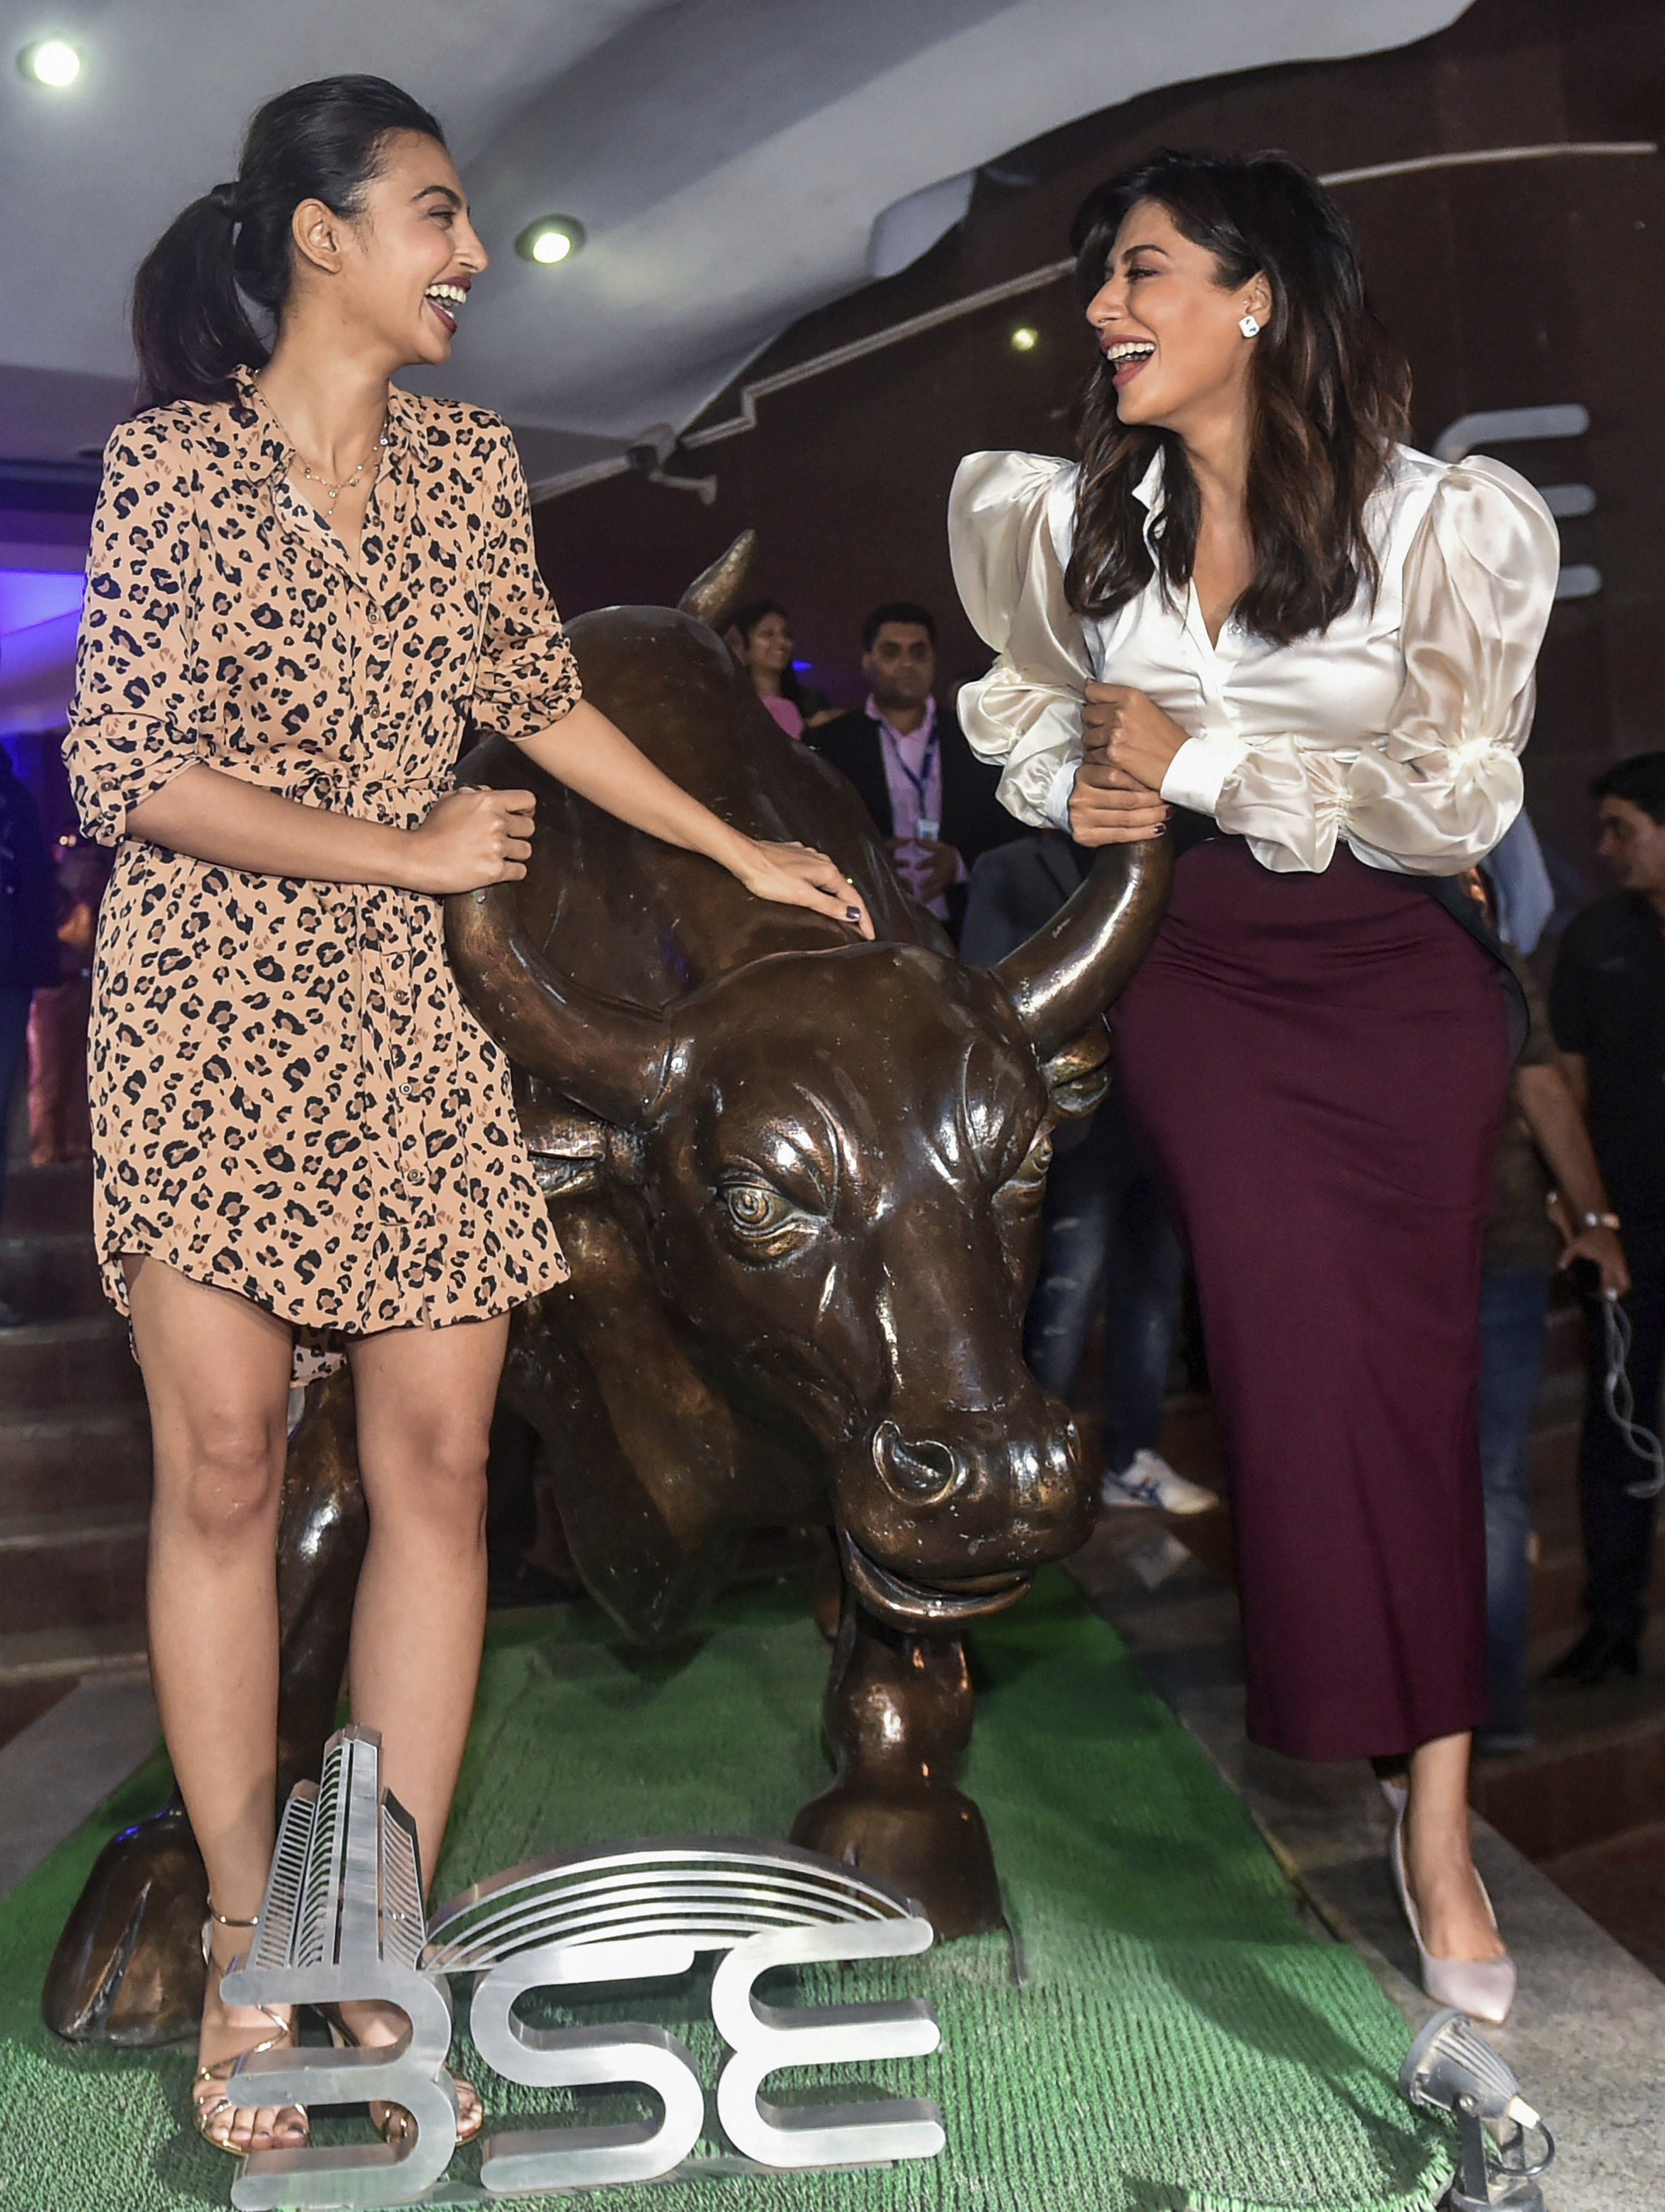 Bollywood actresses Chitrangada Singh and Radhika Apte near the statue of the bull at Bombay Stock Exchange during a promotional event of their movie 'Bazaar' in Mumbai - PTI